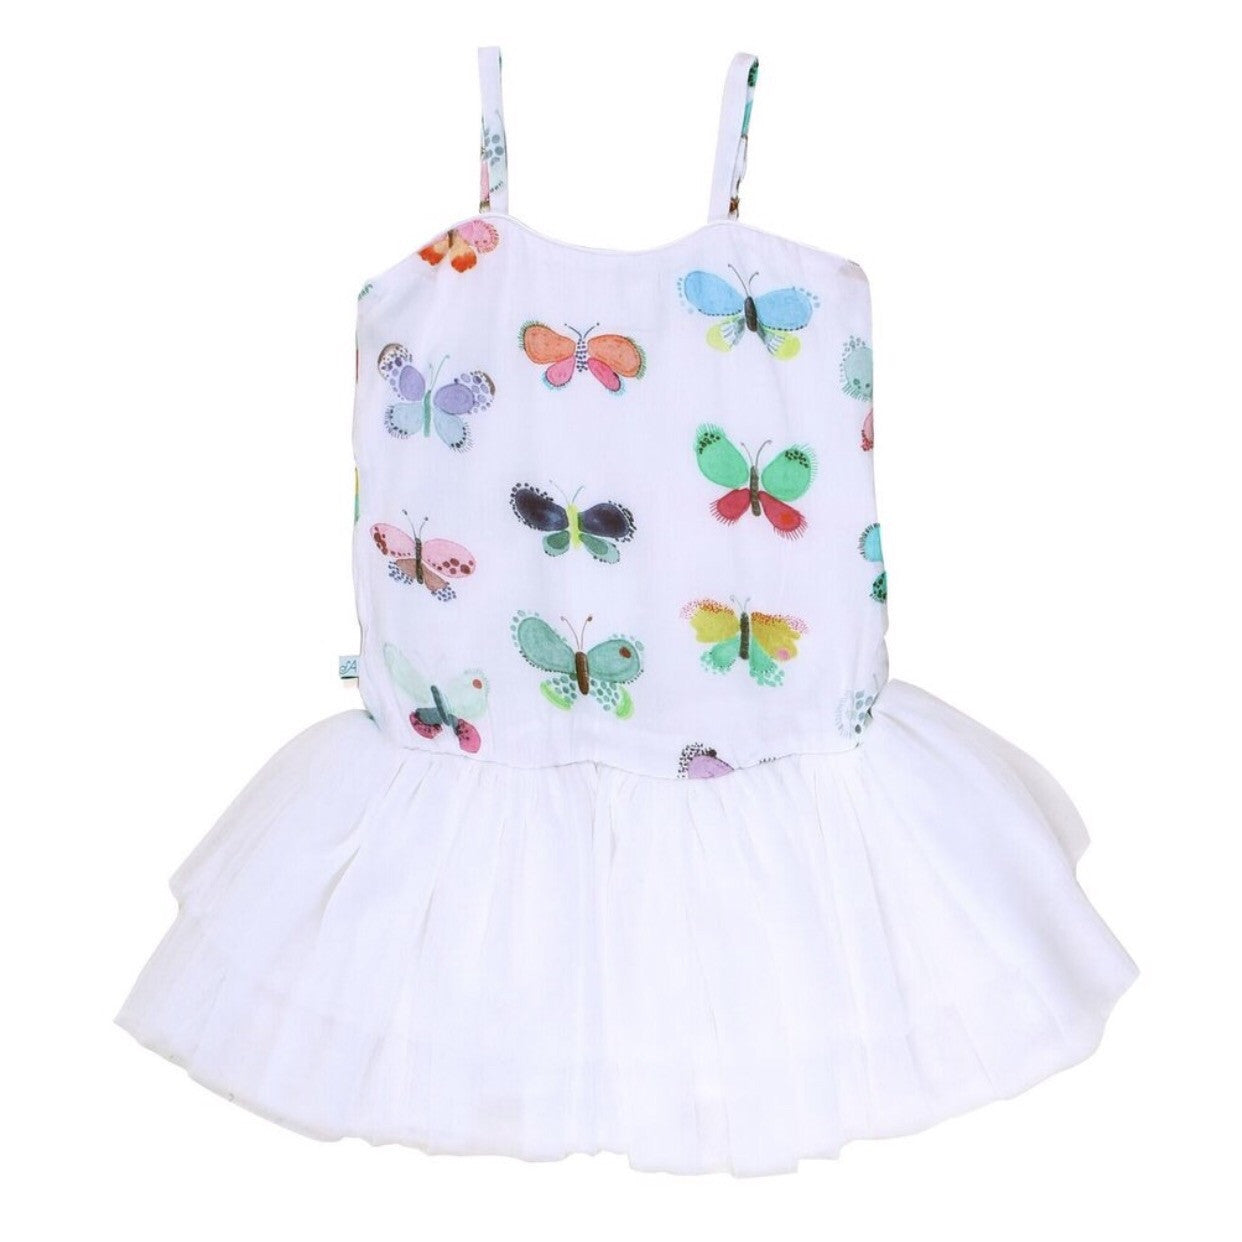 Alex & Ant Butterfly Tutu Dress